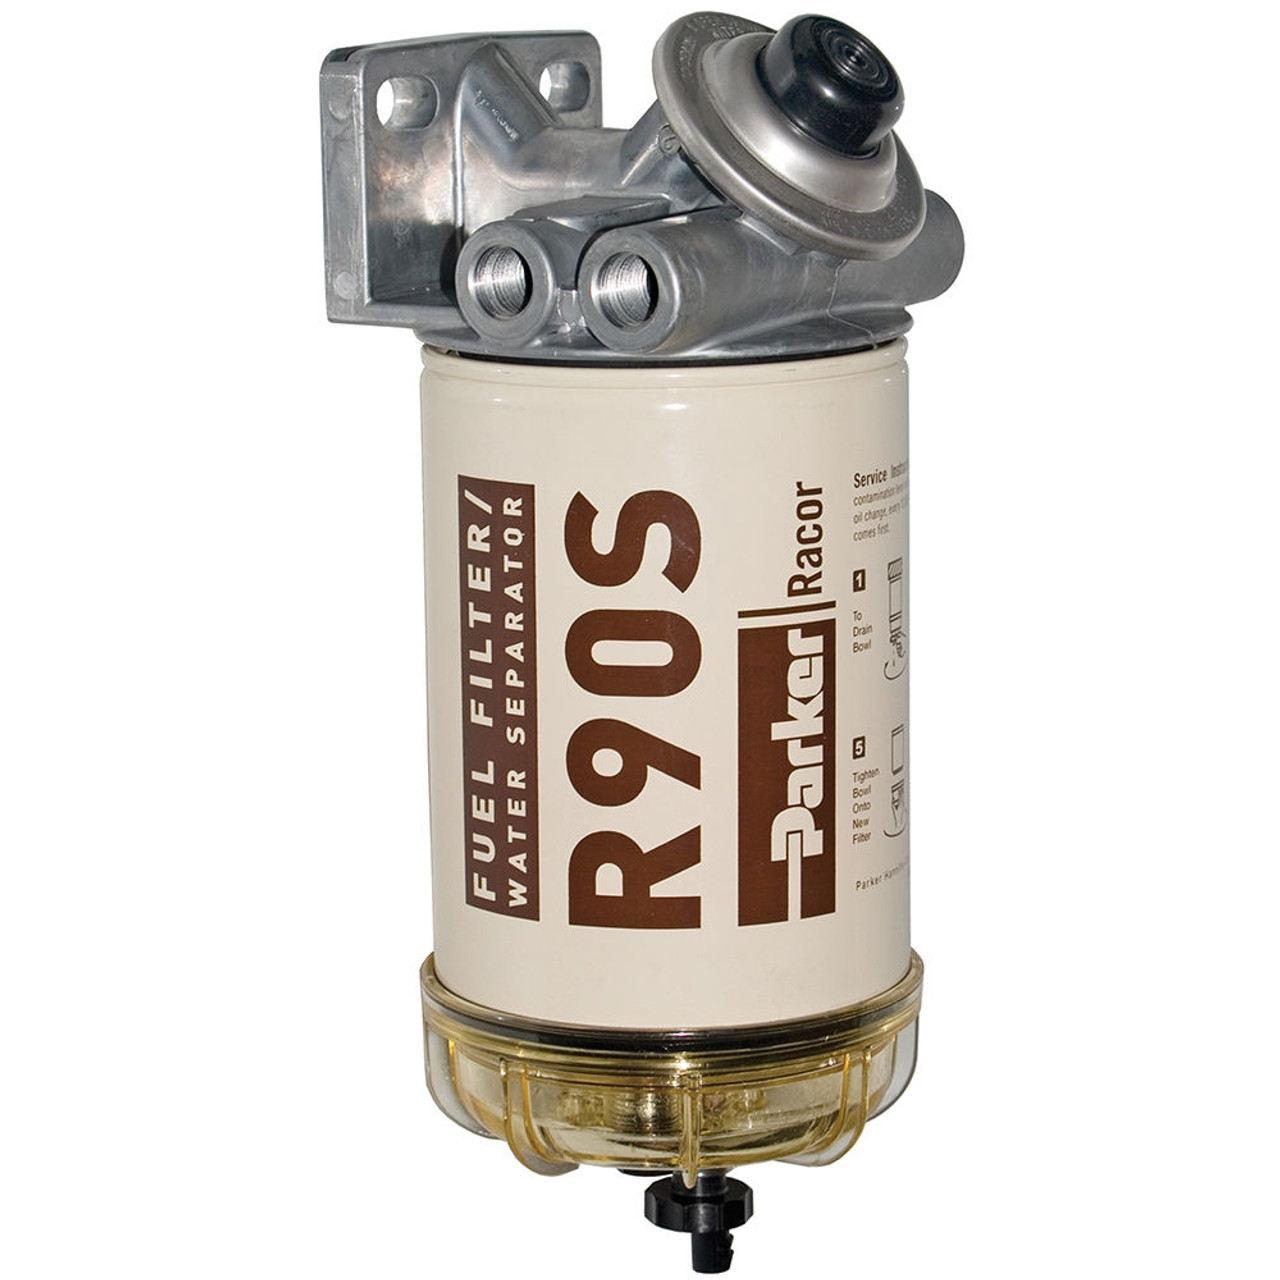 Racor 400 Series 90 GPH sel Spin-On Fuel Filter - 2 Micron - 6 ...